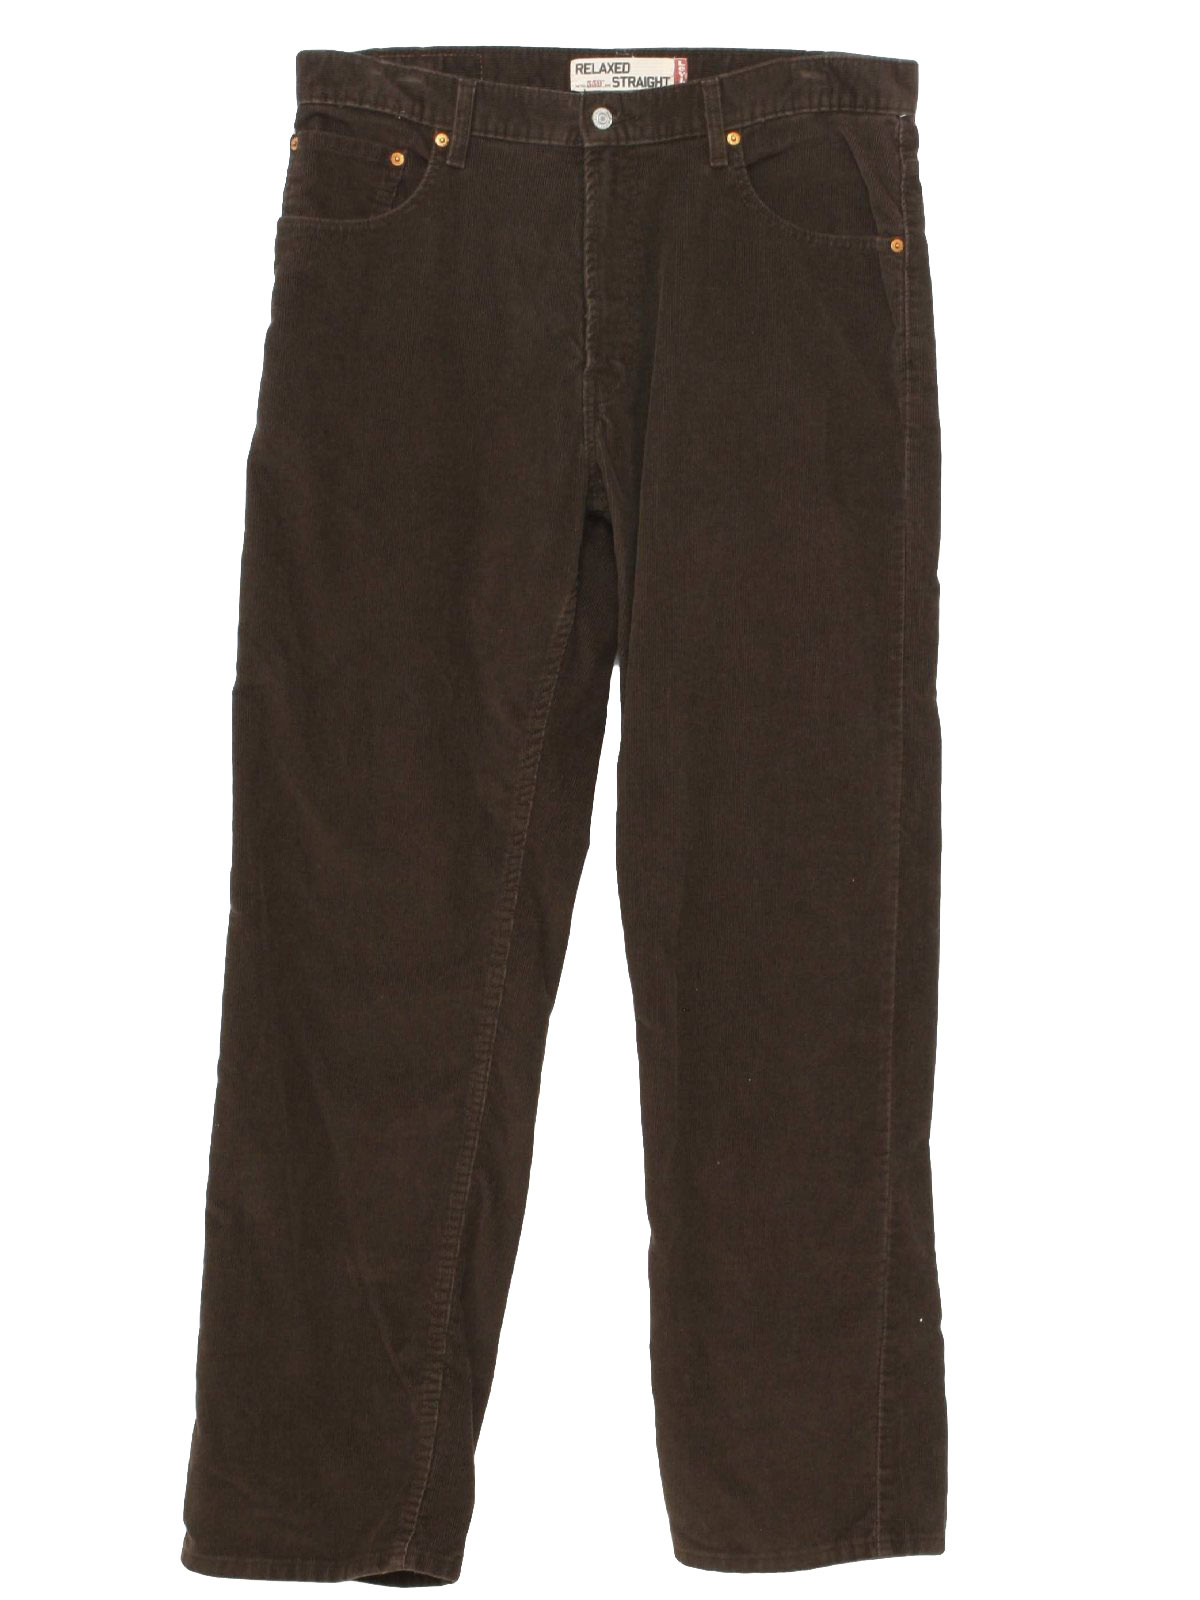 Dress womens clothing: Brown corduroy trousers mens